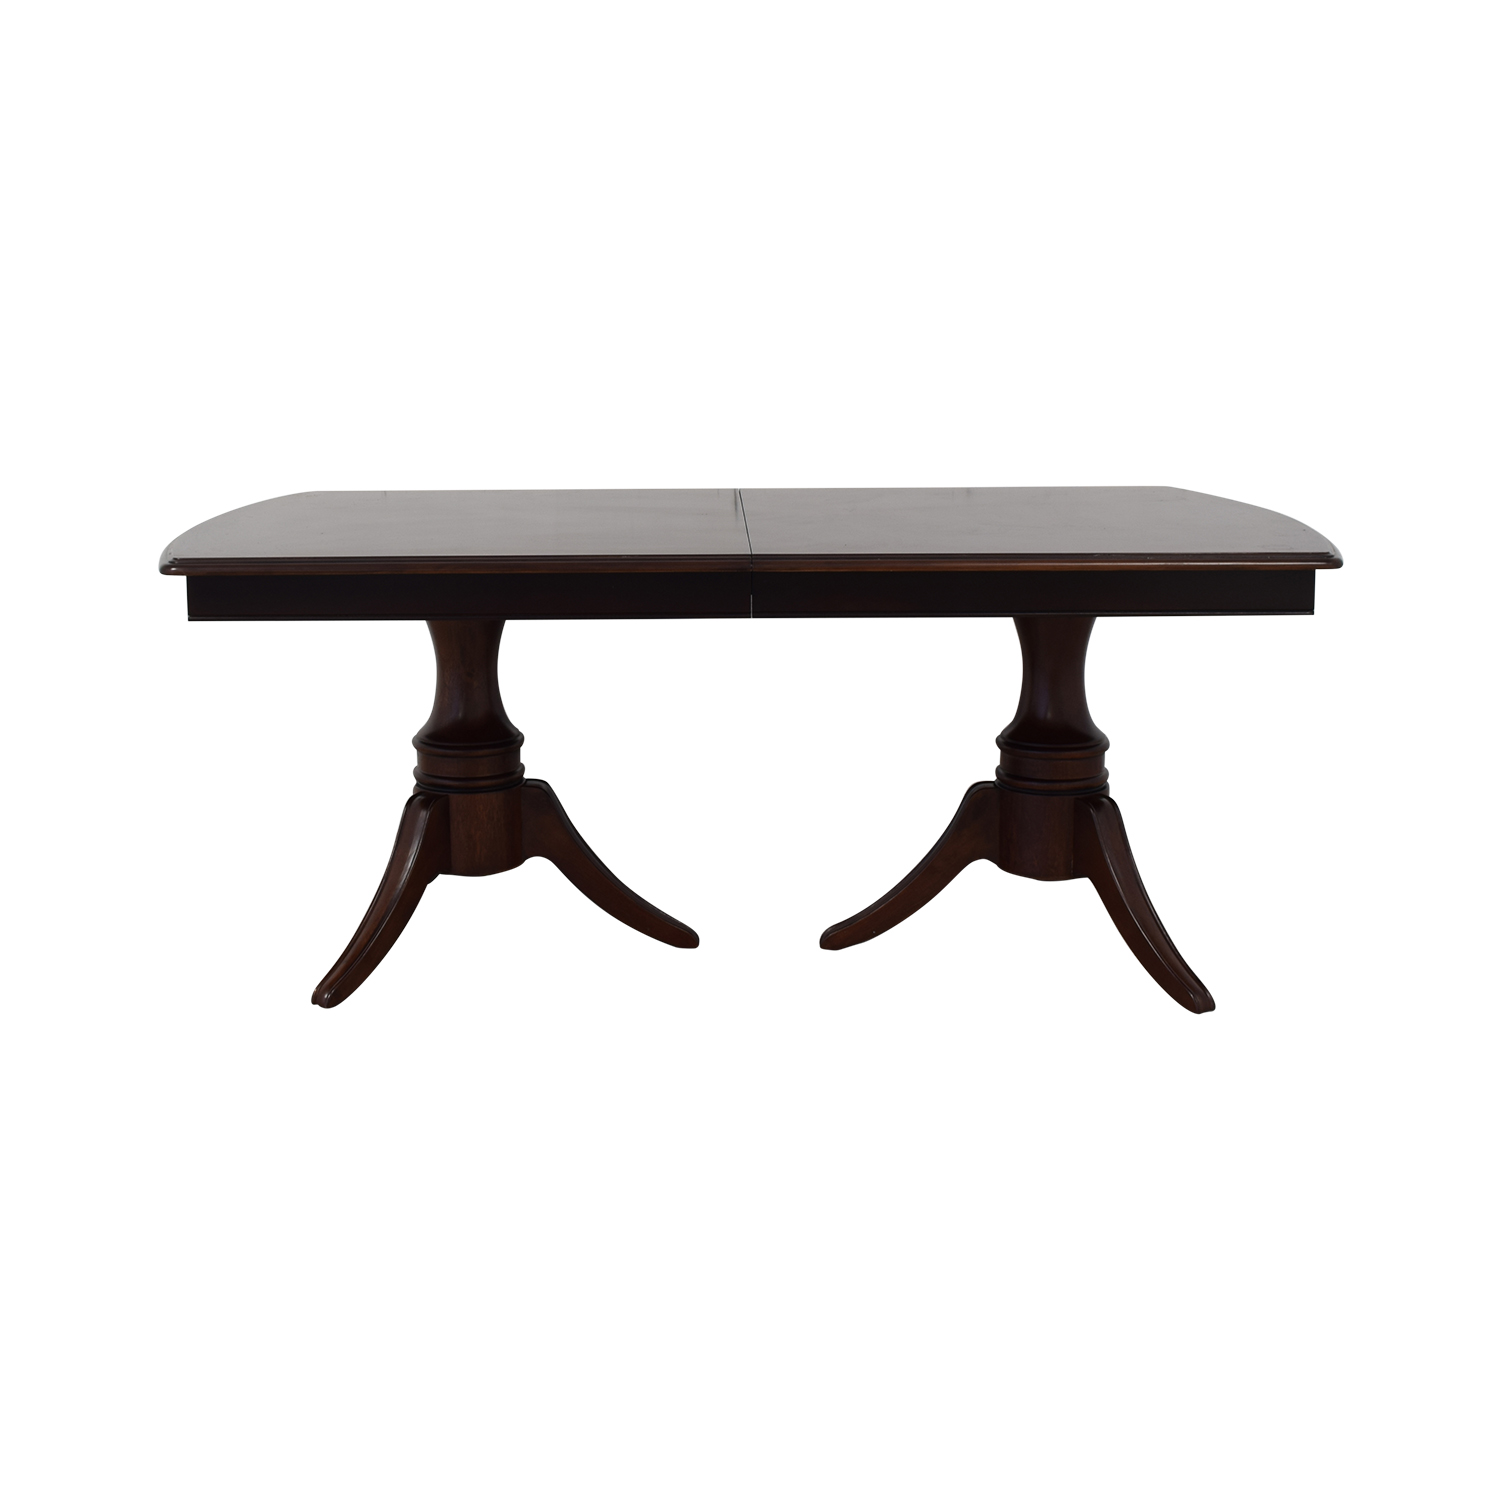 Raymour & Flanigan Raymour & Flanigan Dining Table on sale